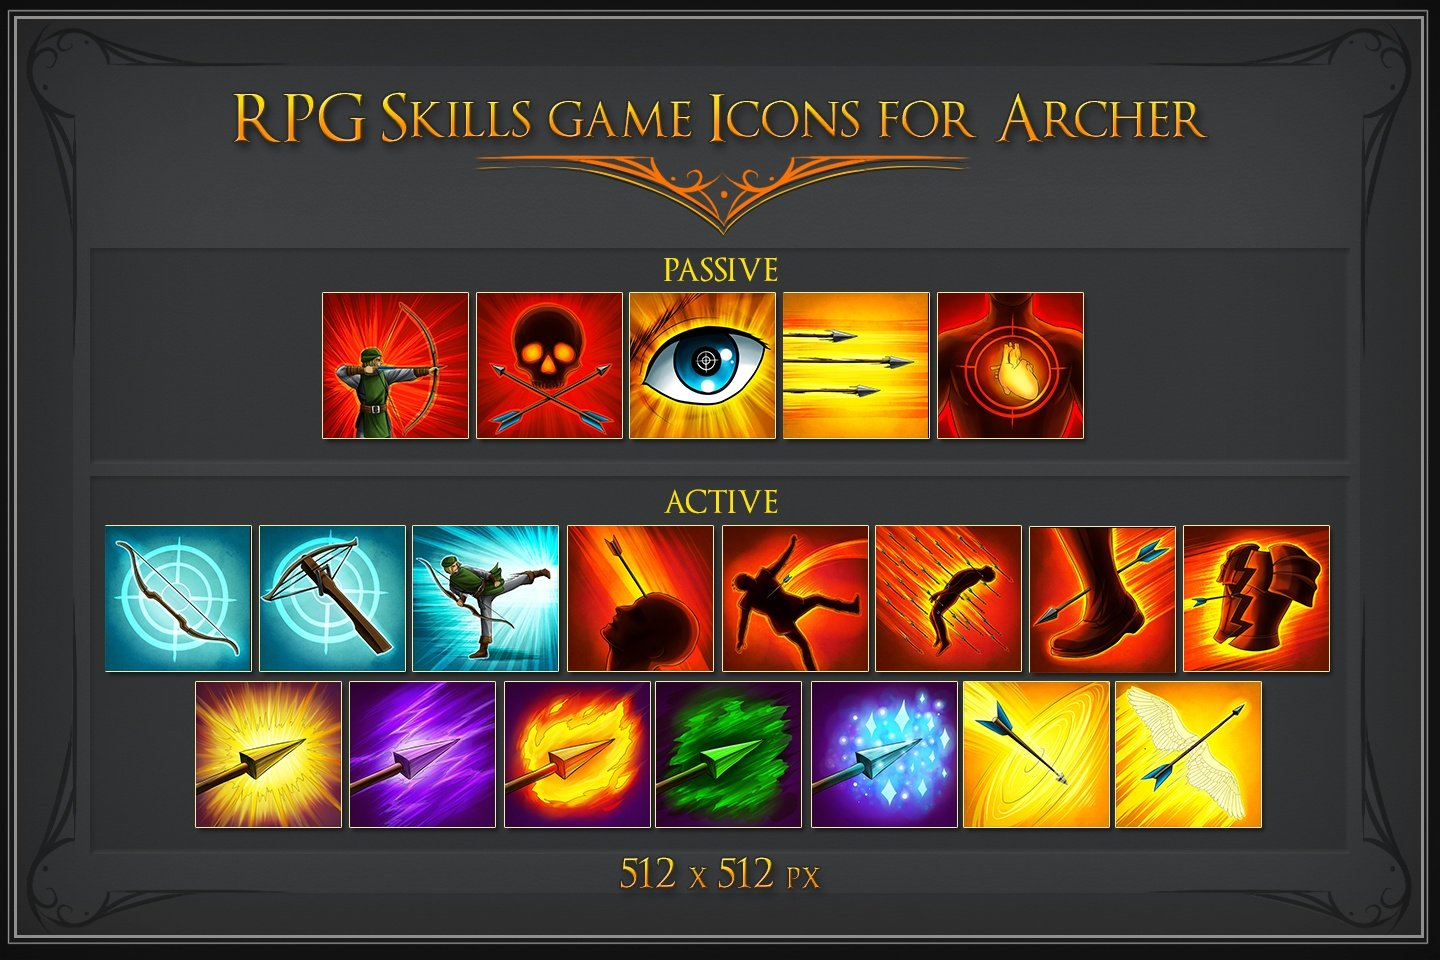 RPG Skill Icons for Archer